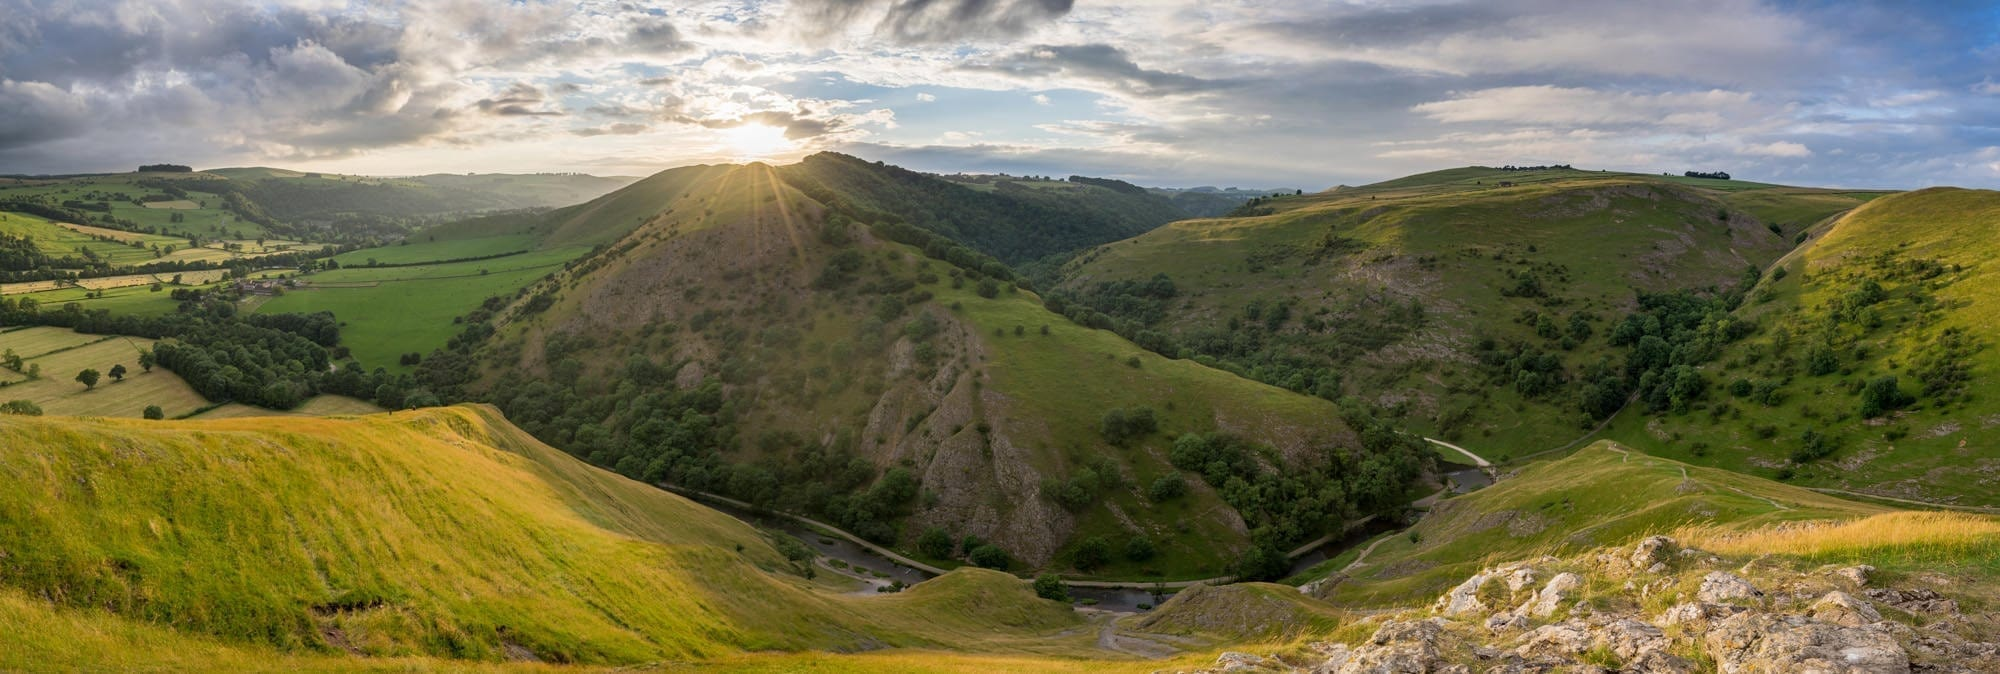 Thorpe Cloud Sunset - Dovedale - Peak District Through The Lens Photography Workshop